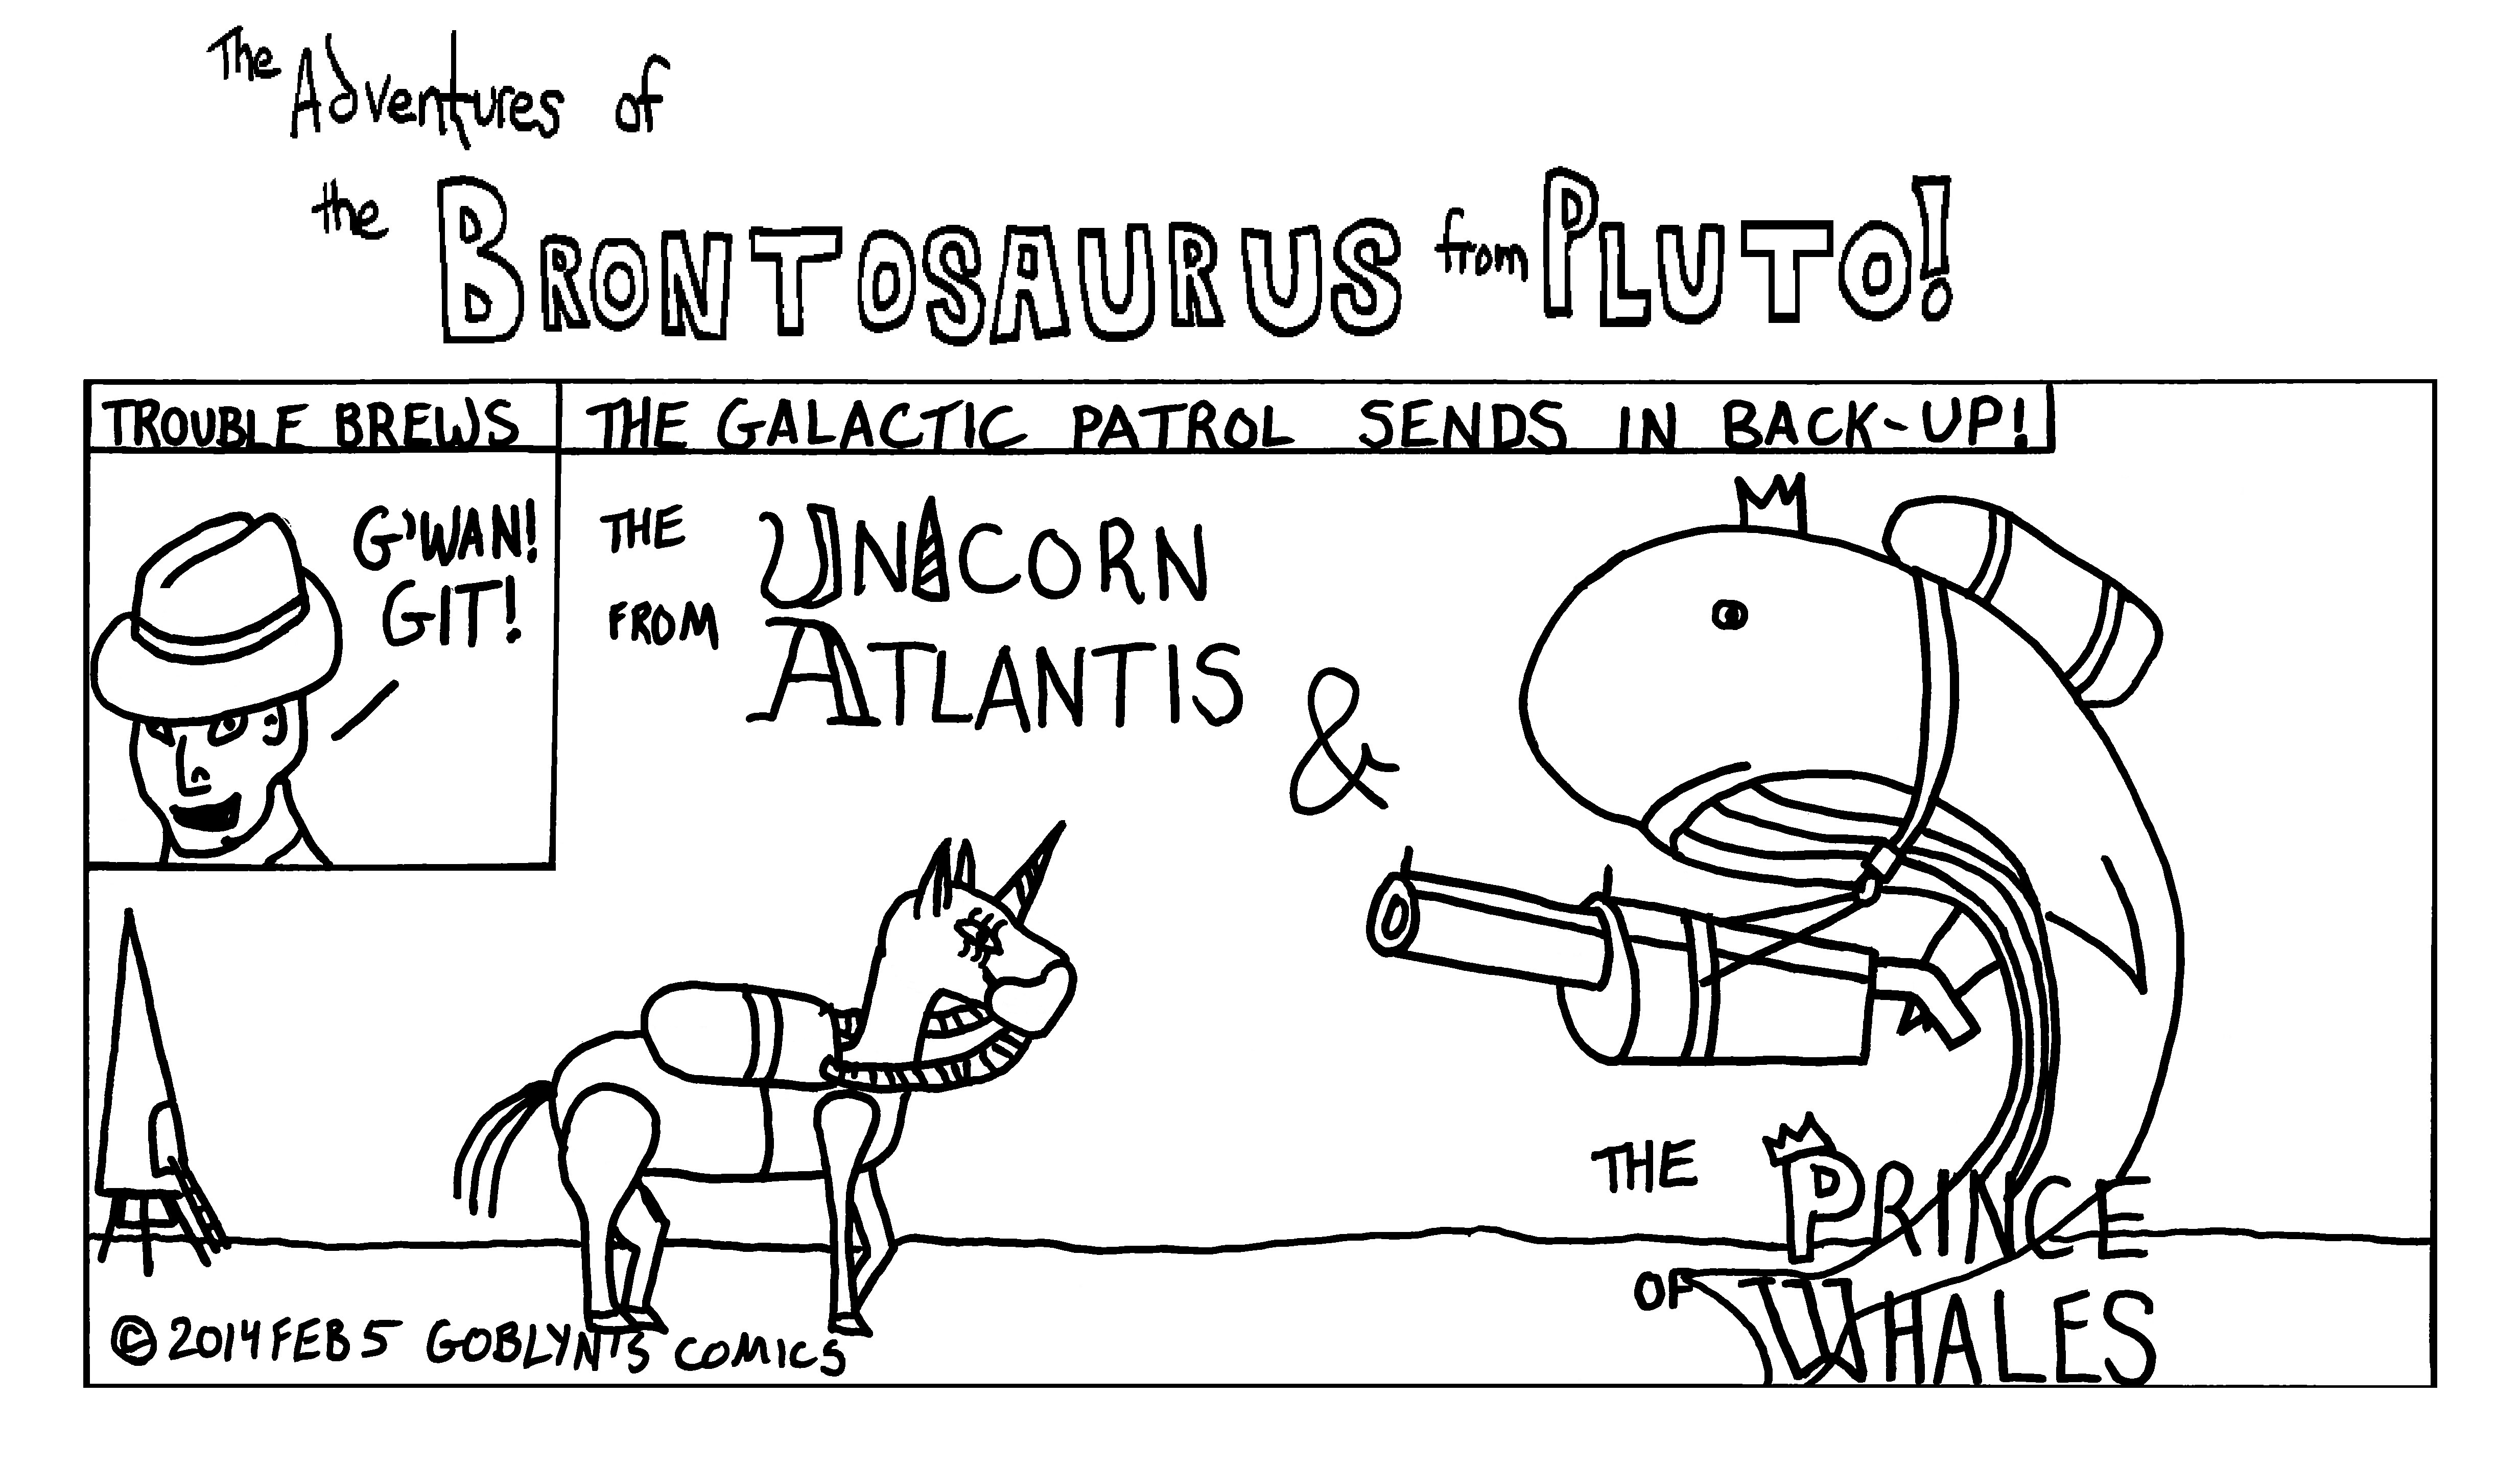 The Brontosaurus from Pluto - The Galactic Patrol sends back-up: the Unicorn from Atlantis and the Prince of Whales